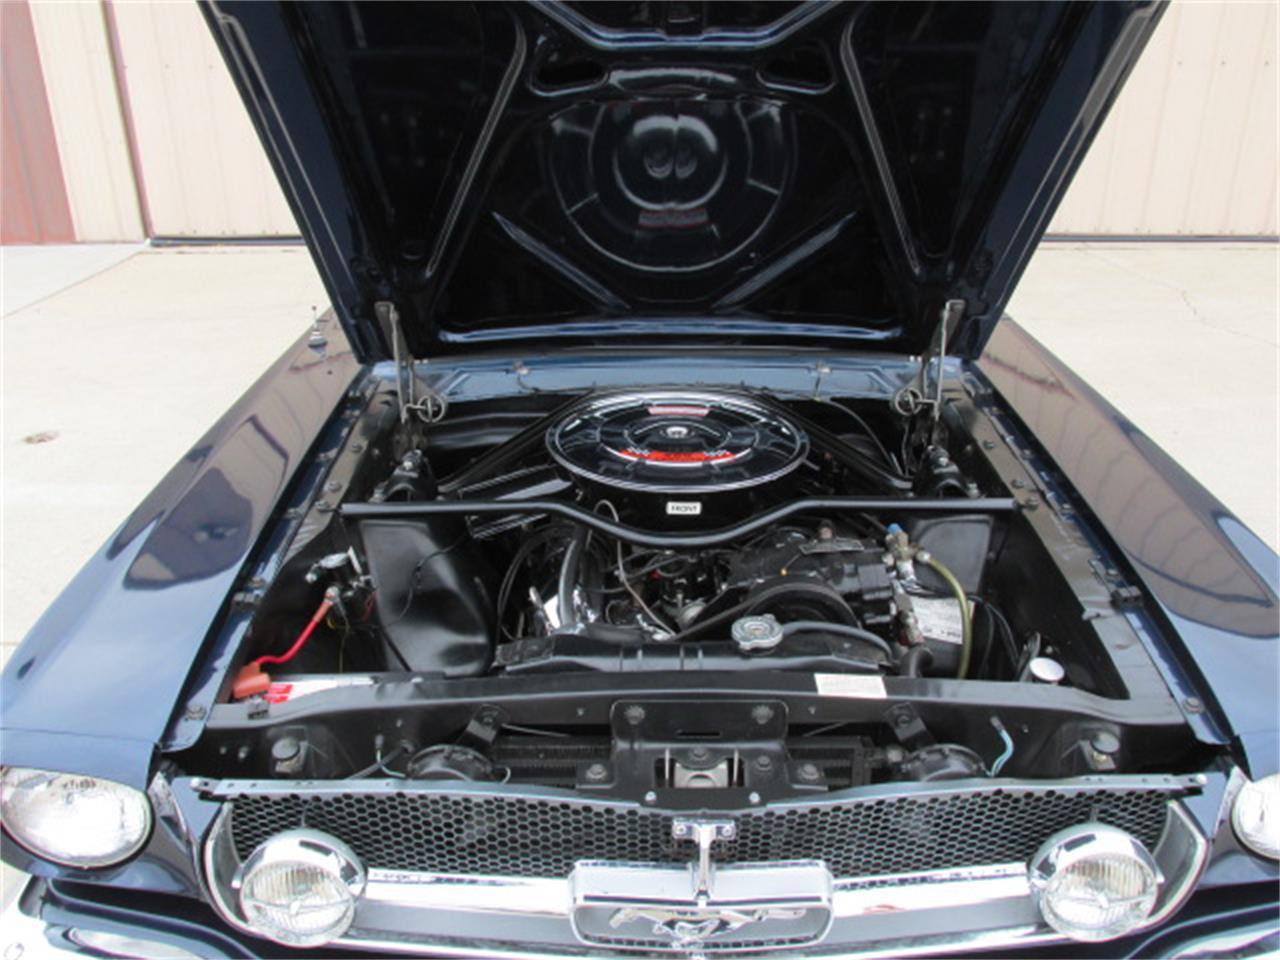 Large Picture of 1965 Mustang located in Illinois Offered by a Private Seller - P1IH